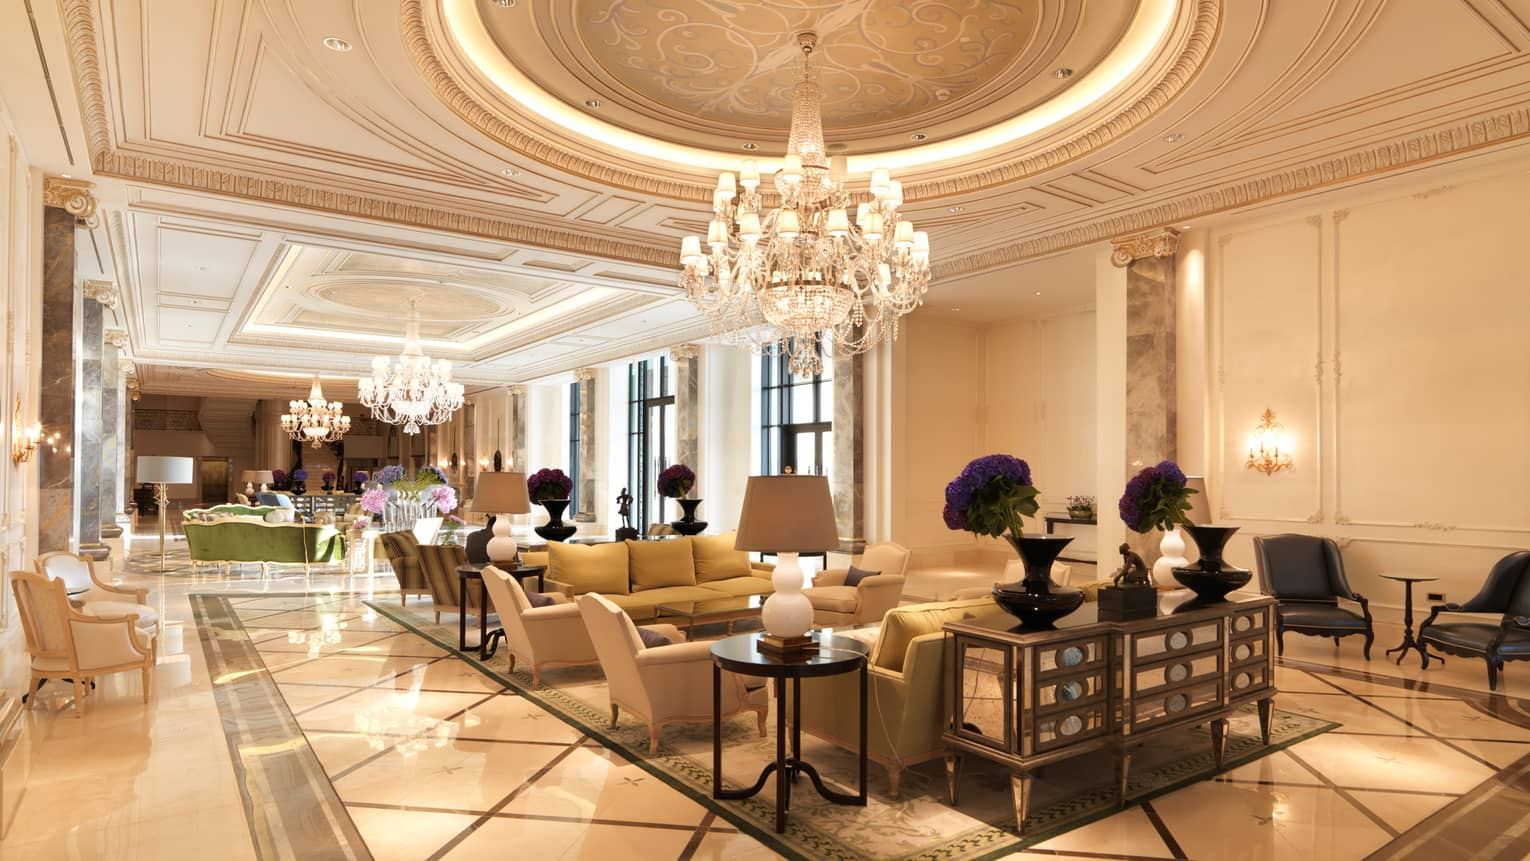 Baku hotel lobby with decorative Beaux-Arts ceiling, three large crystal chandeliers, clusters of armchairs below